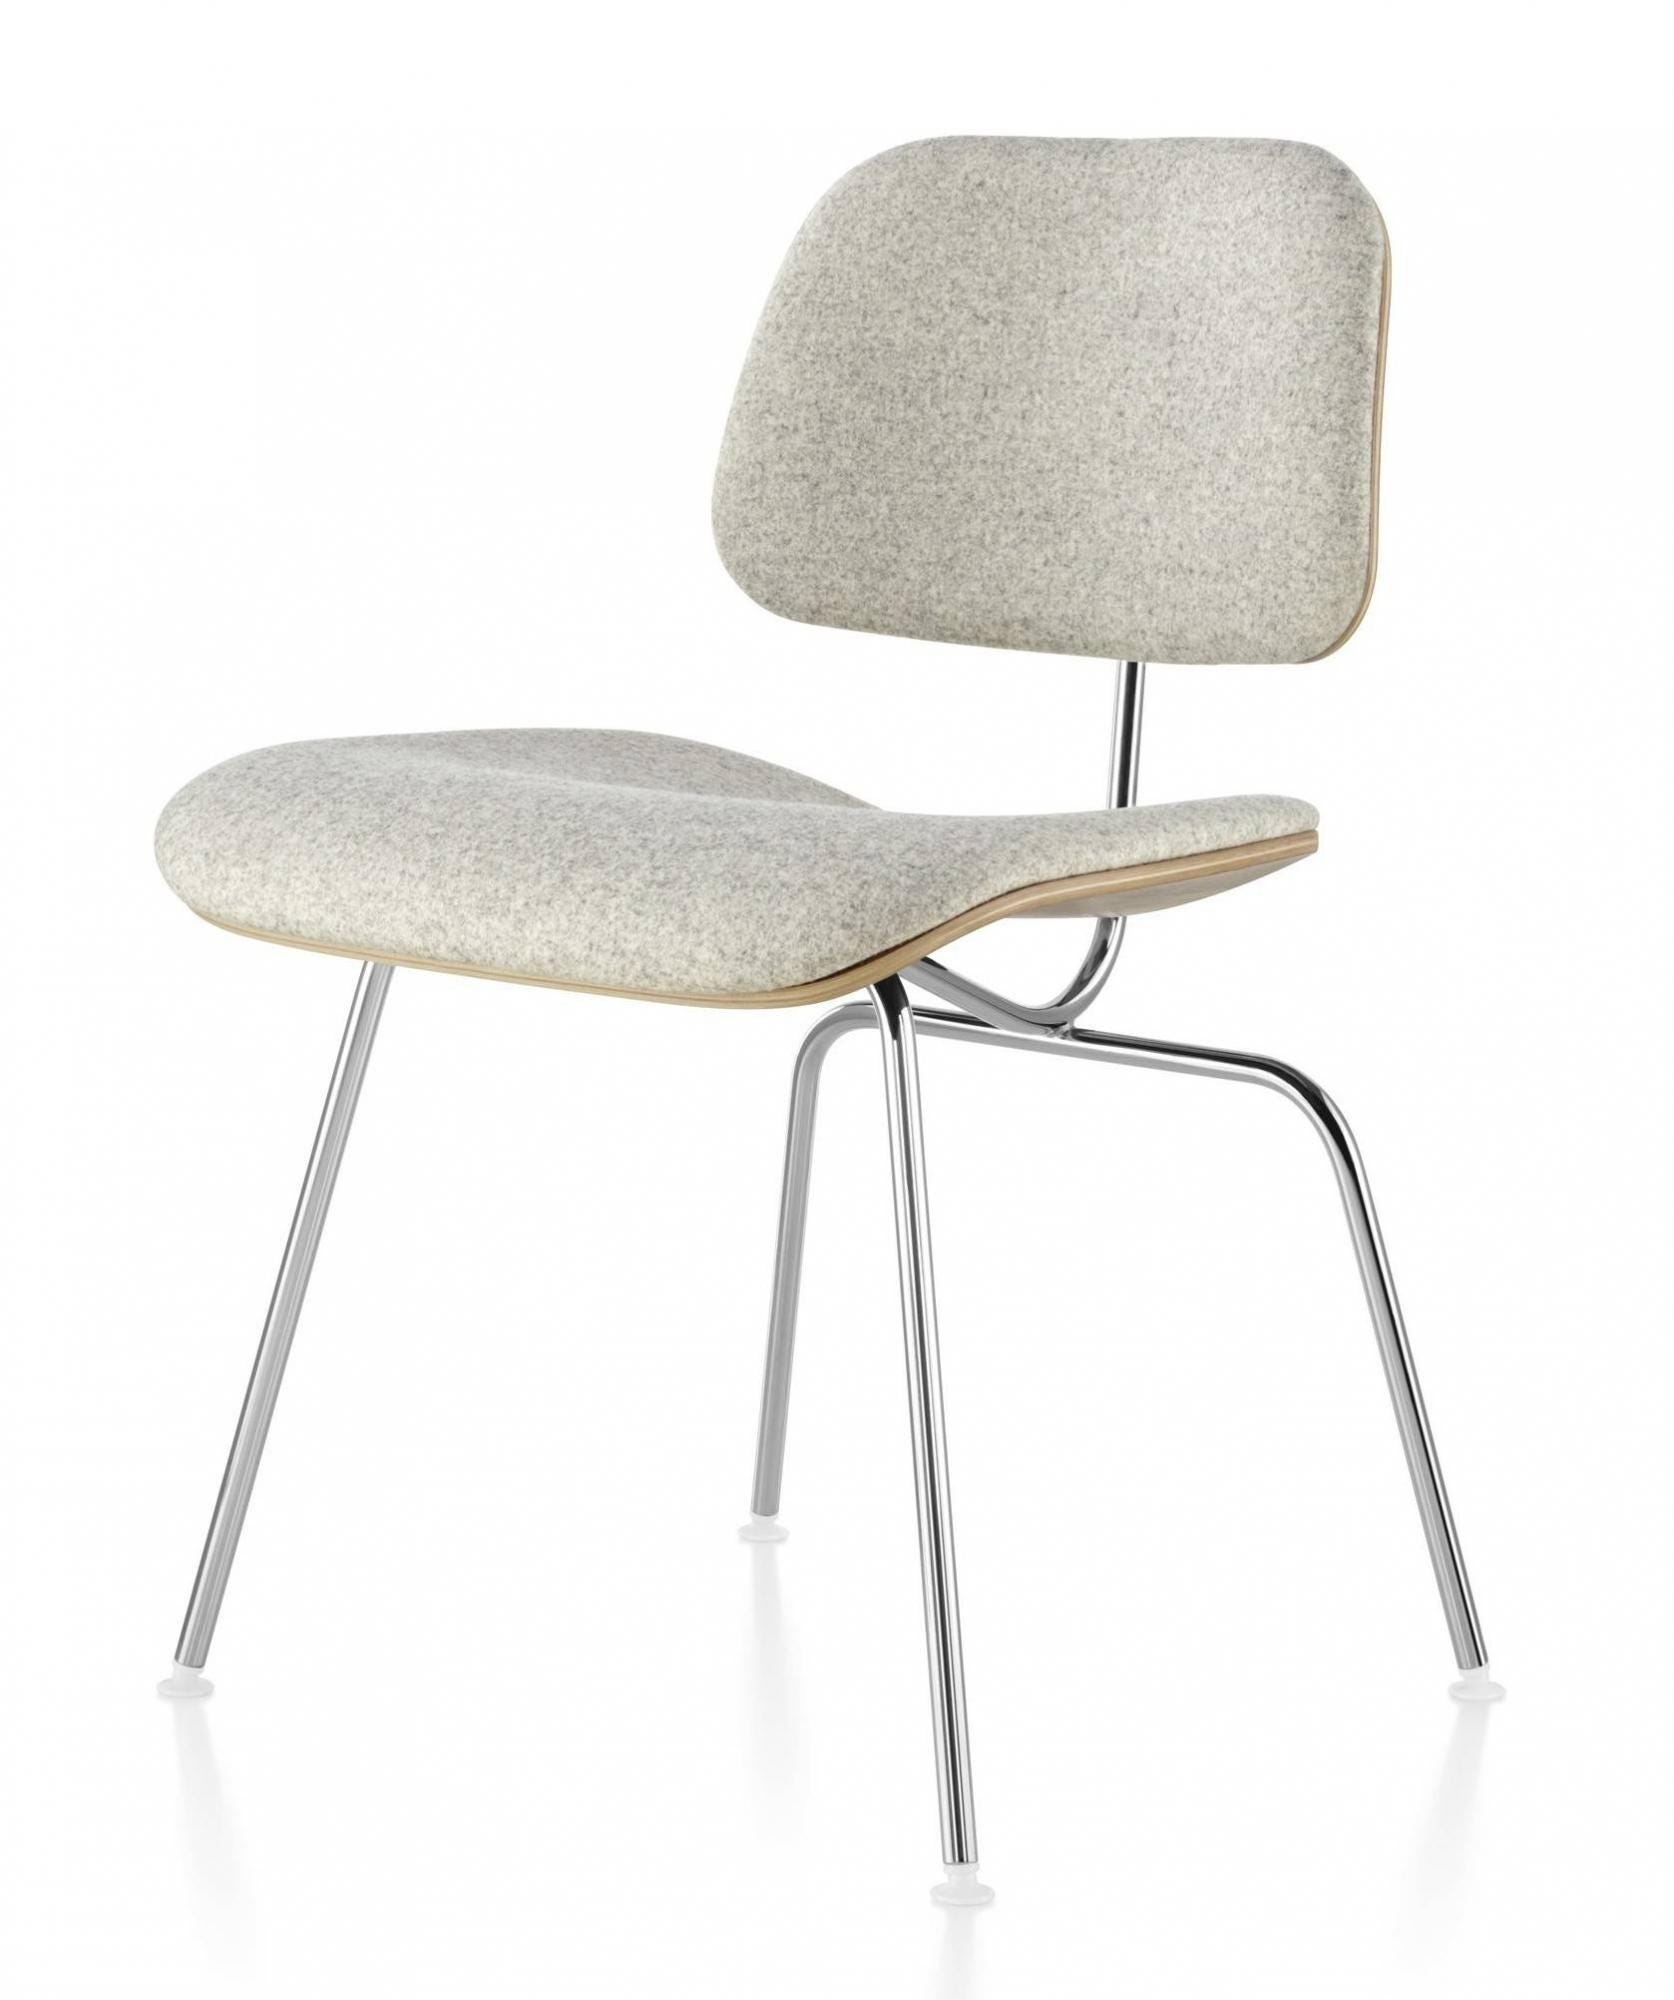 Herman Miller Eames® Molded Plywood Upholstered Dining Chair - Metal Legs